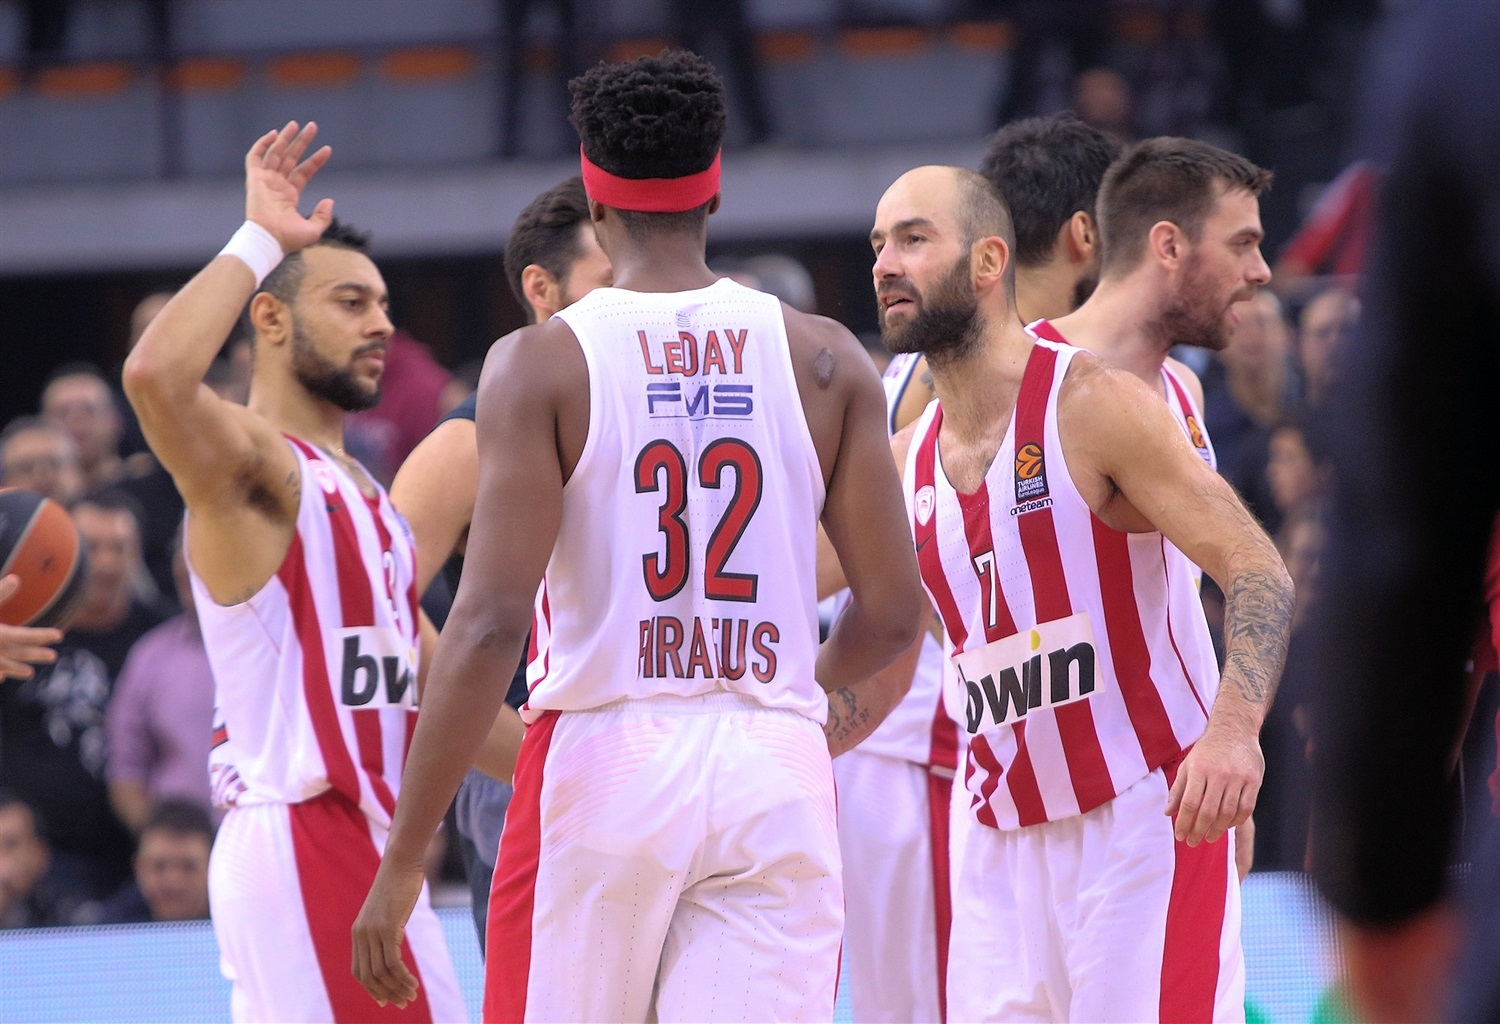 Players Olympiacos Piraeus - EB18